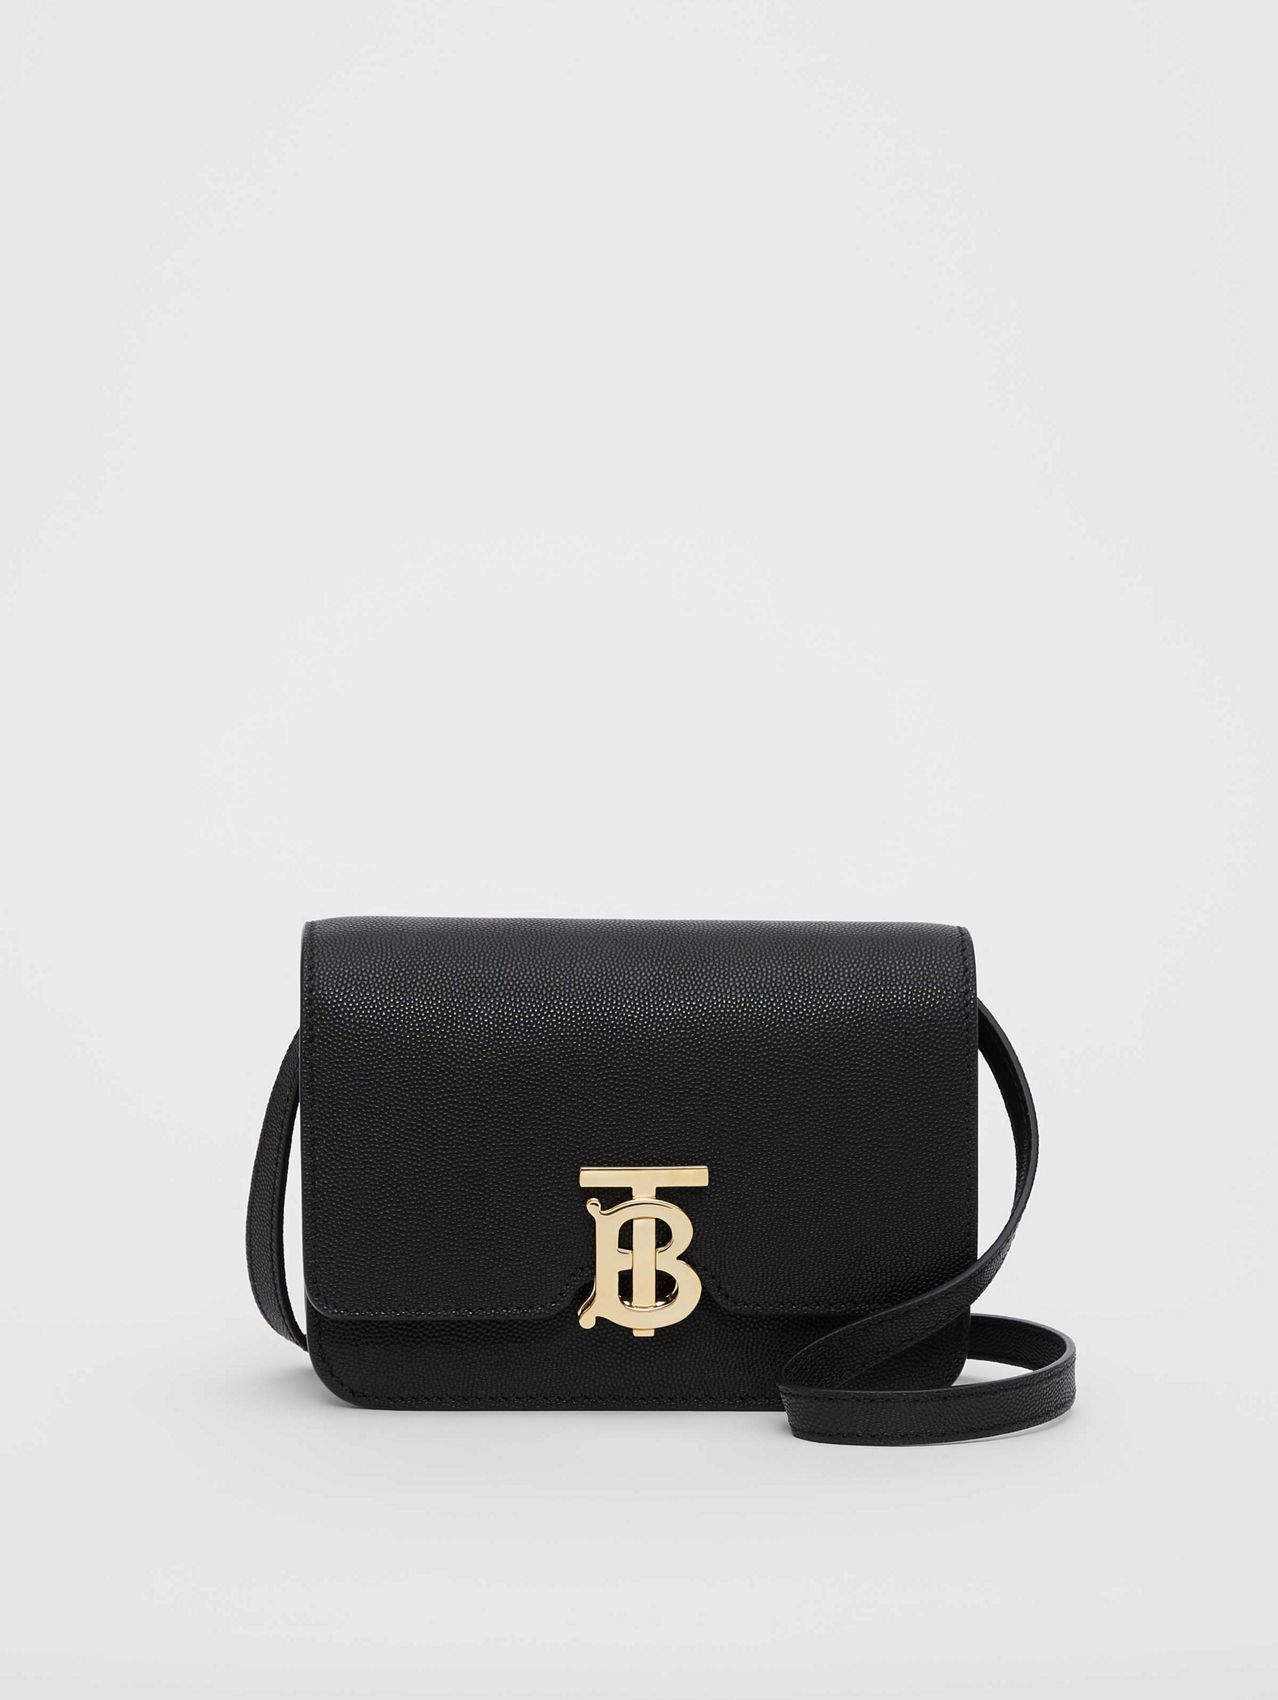 Mini Grainy Leather TB Bag (Black)